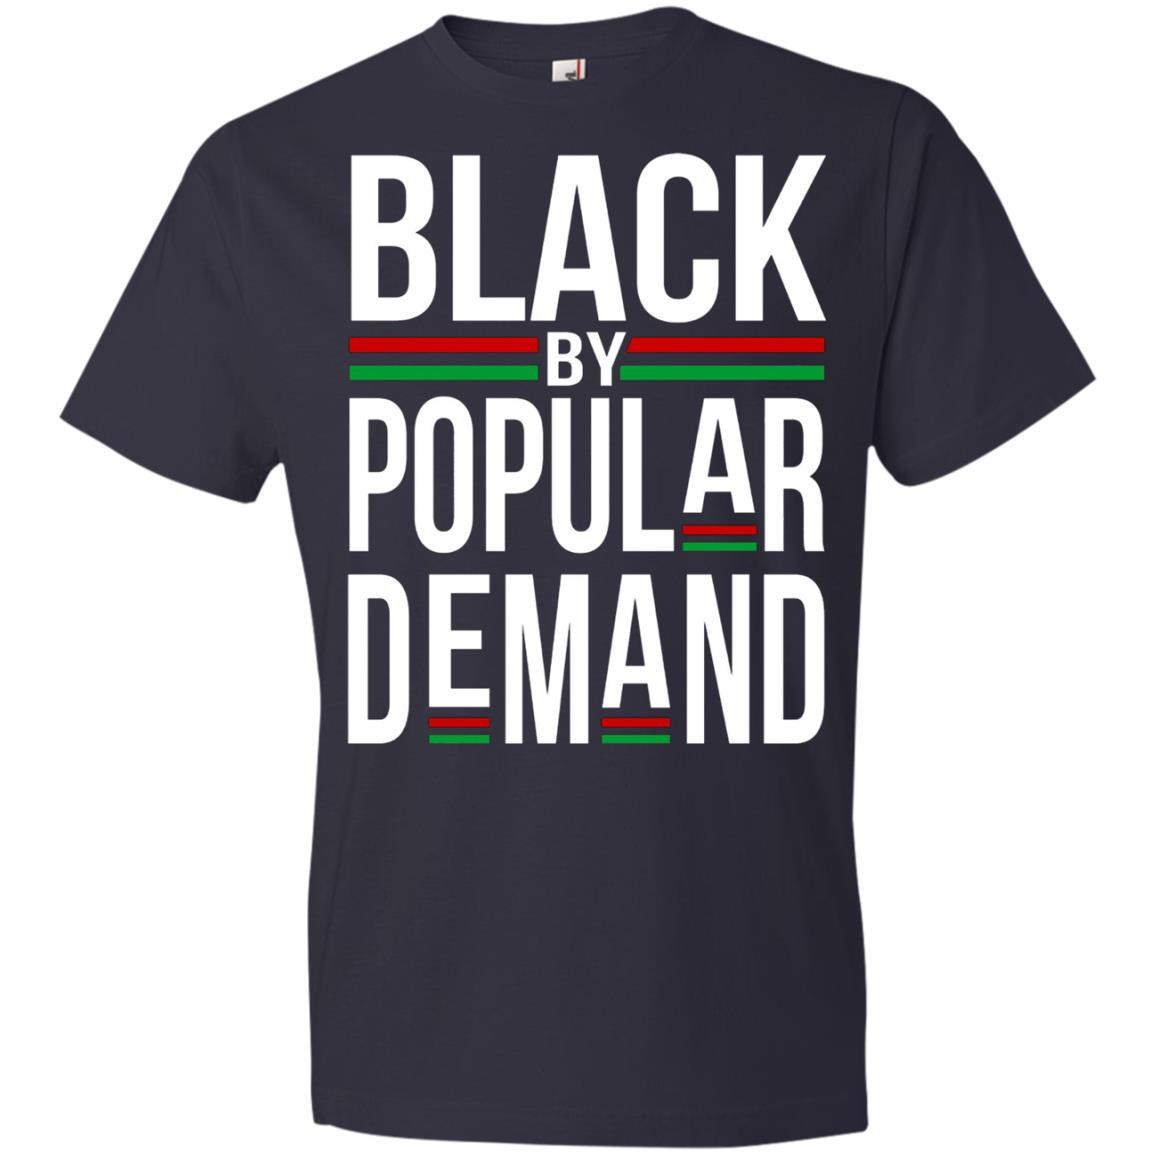 Black by Popular Demand - Cool Black History T shirt Saying - Anvil Lightweight T-Shirt Style / Color / Size